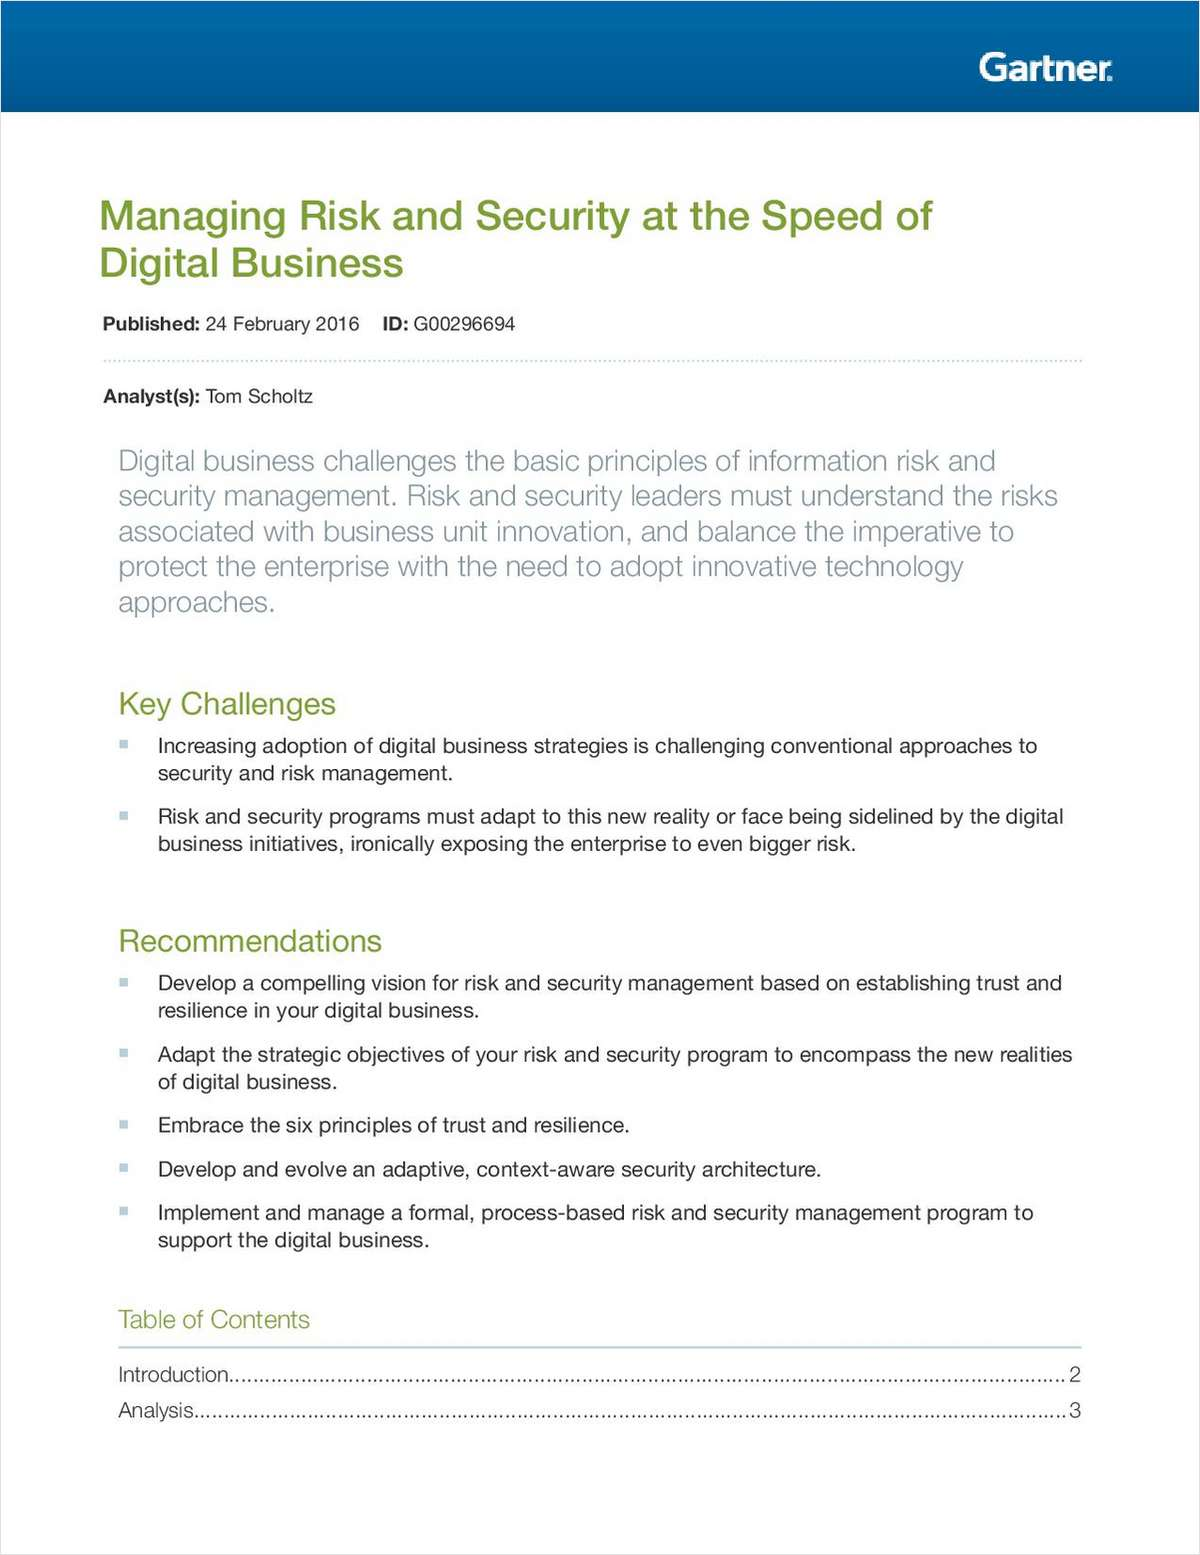 Managing Risk and Security at the Speed of Digital Business